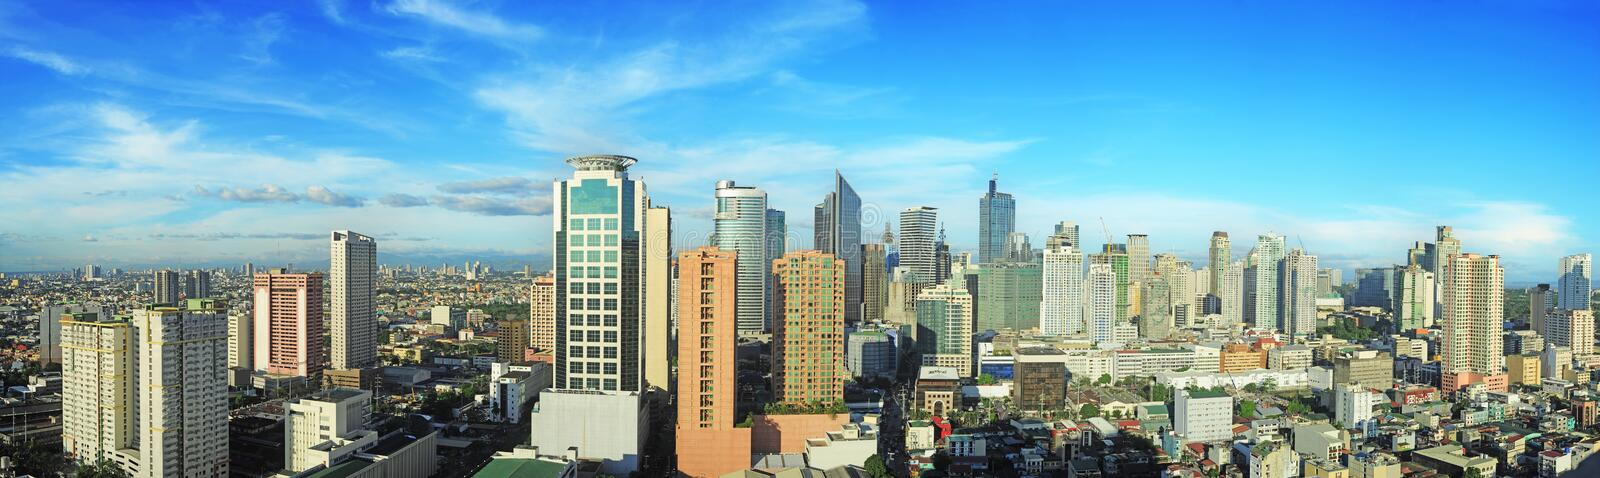 Makati city royalty free stock photo